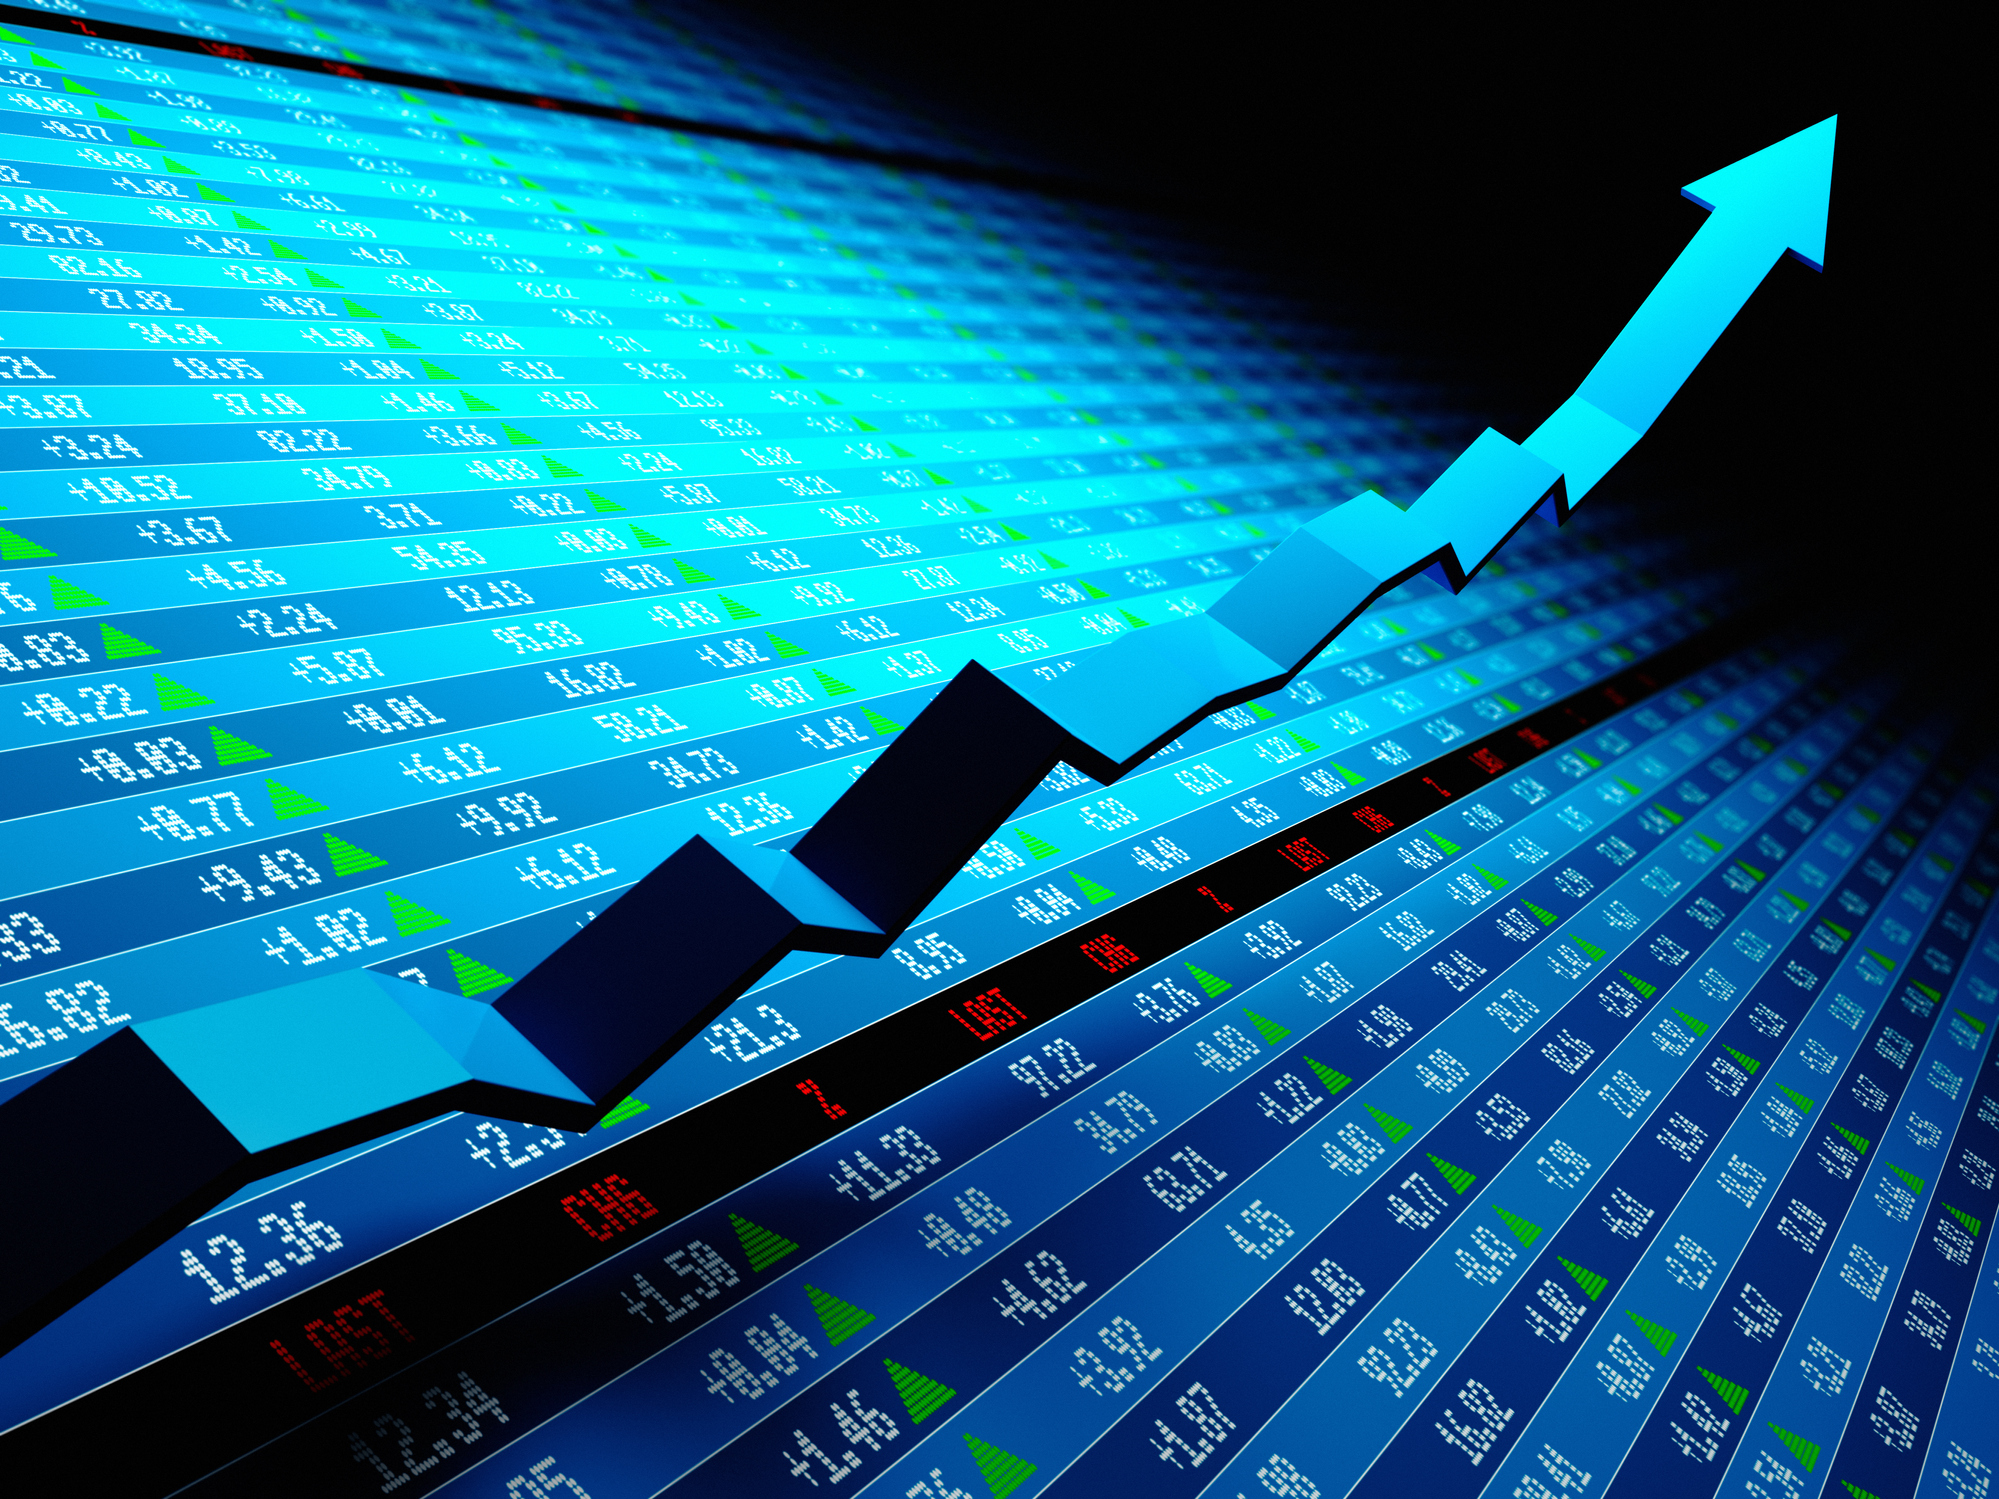 Financial_Stock market data with uptrend vector. Shallow depth of field 3d render.Similar images: